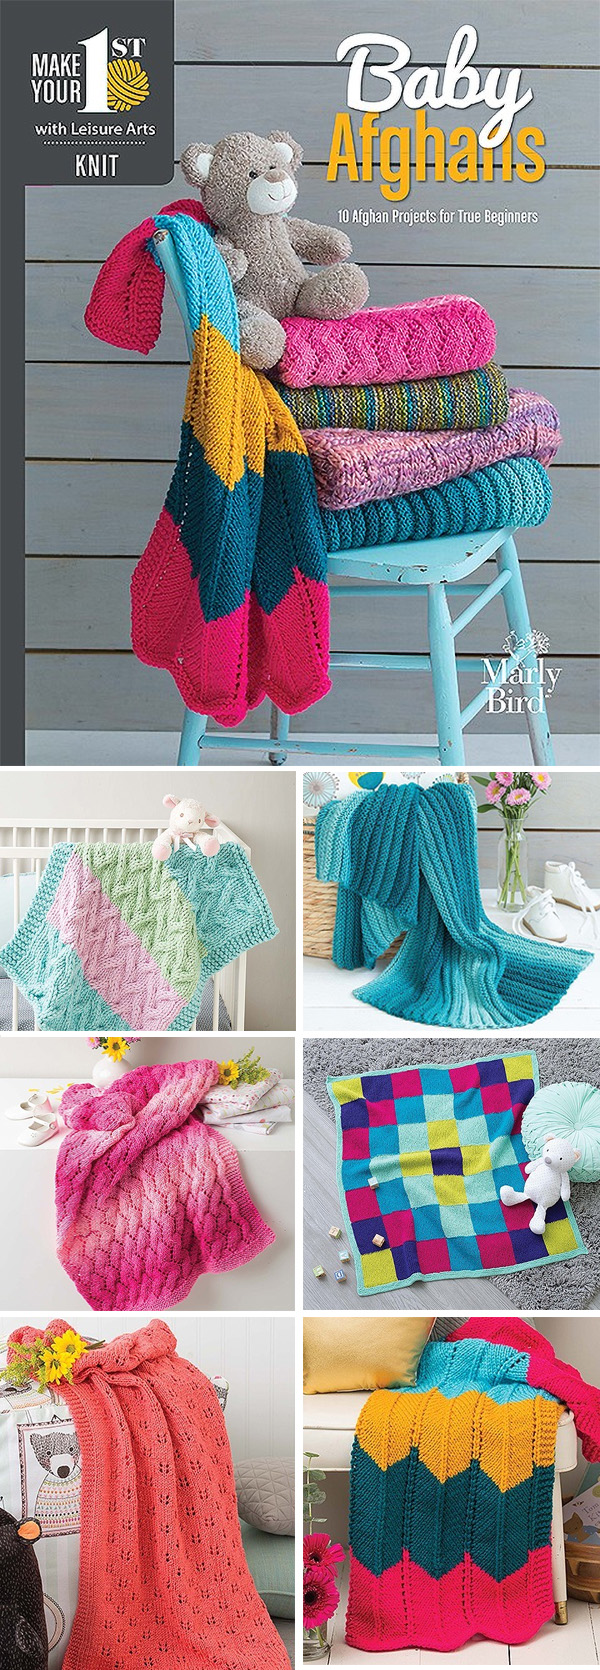 Make Your First Knit Baby Afghans - 10 Afghan Projects for True Beginners